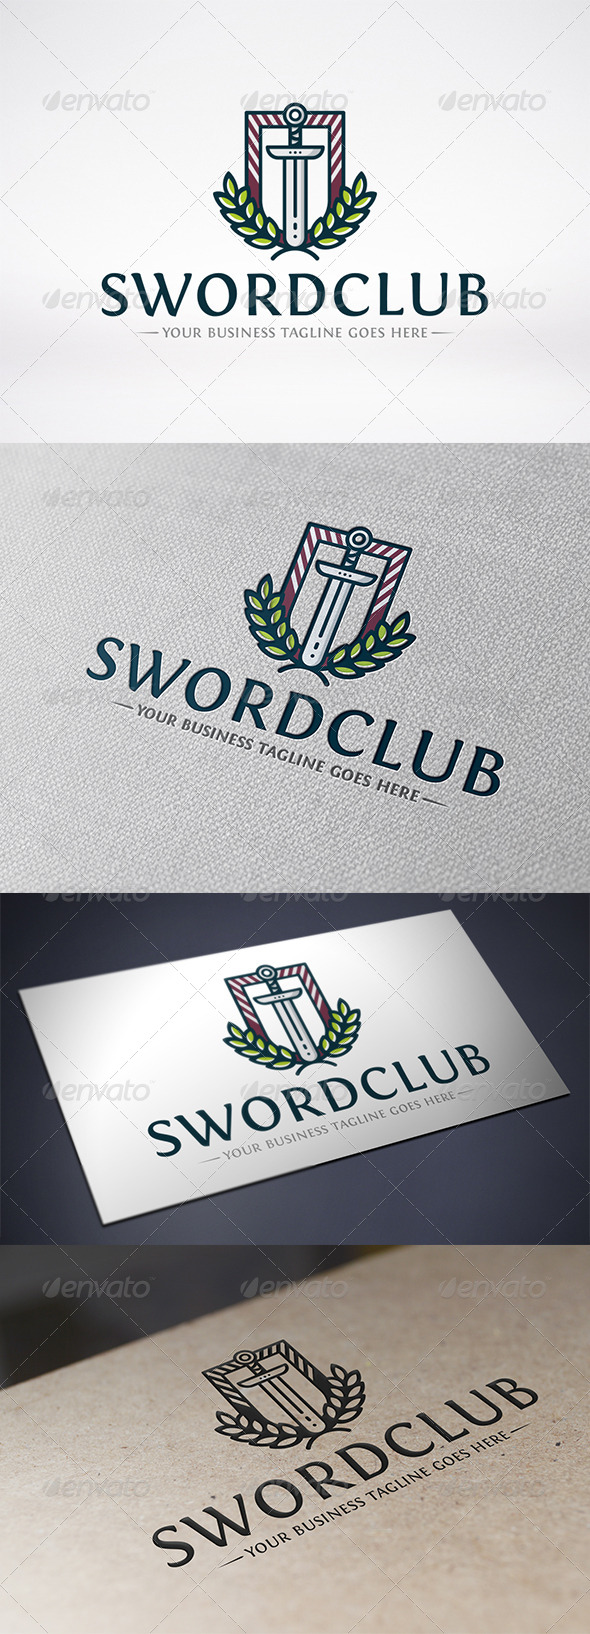 Sword Club Logo Template - Crests Logo Templates